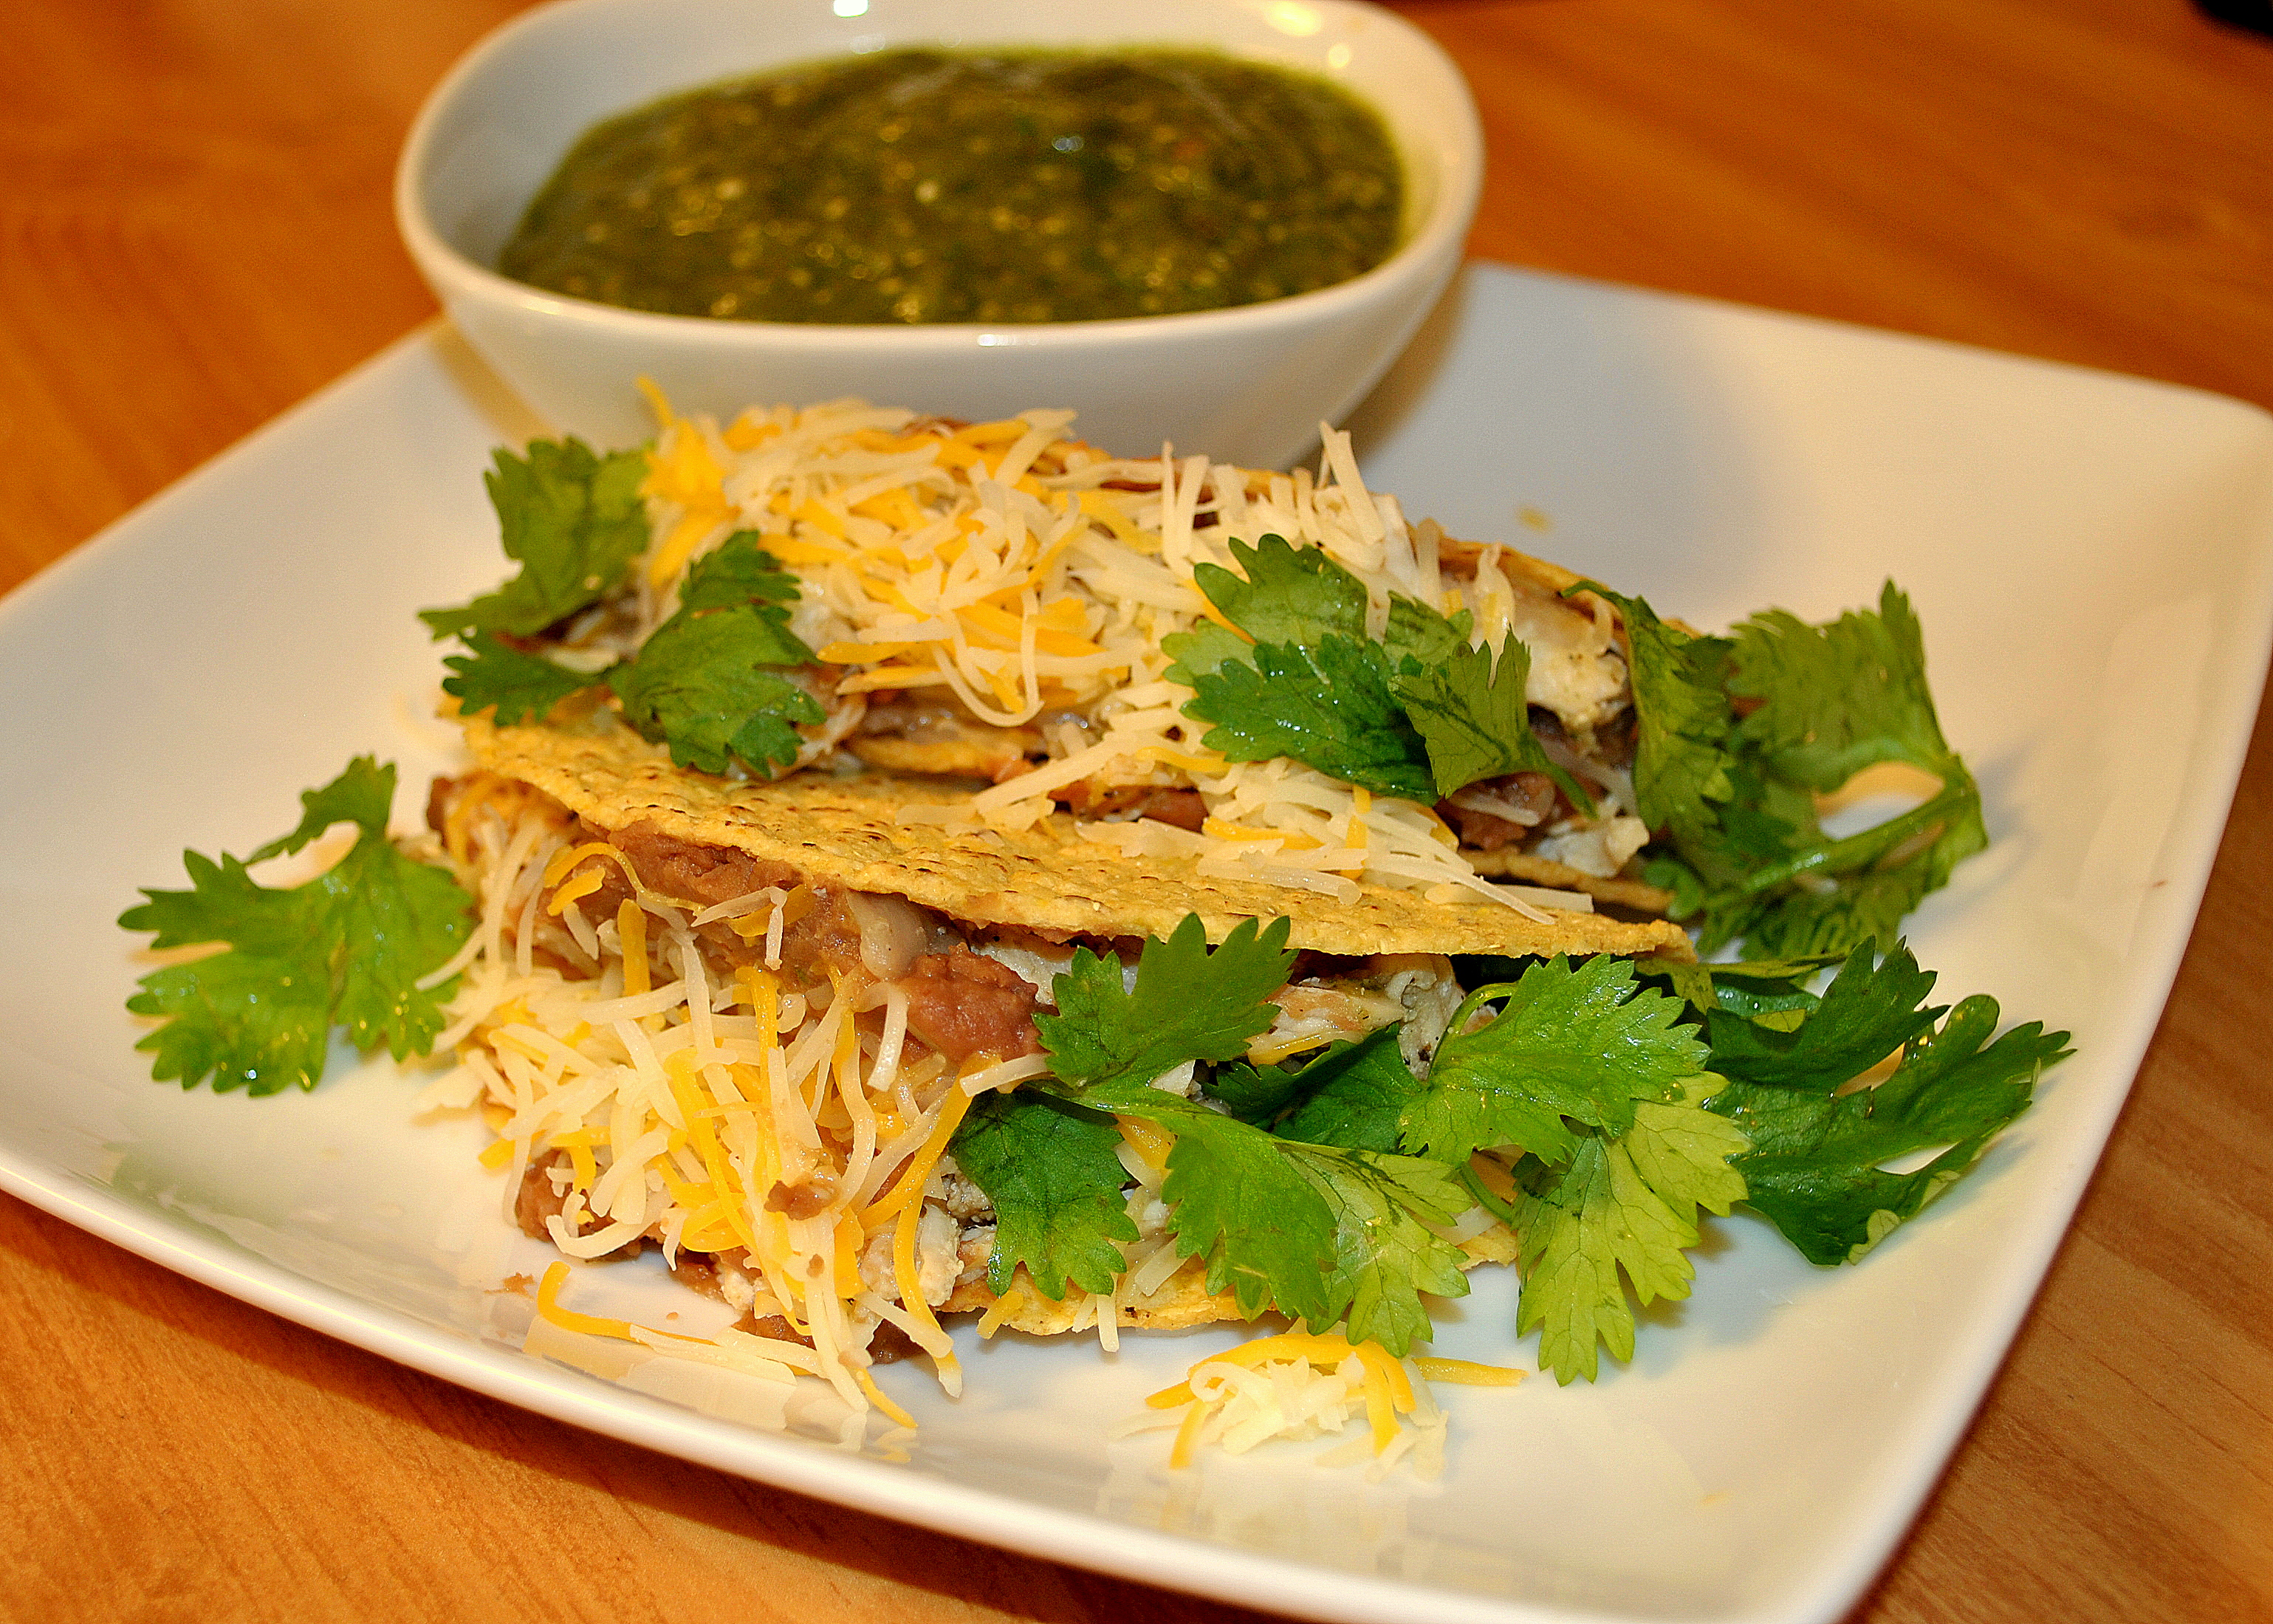 ... shredded chicken, refried beans & cheese with salsa verde on the side